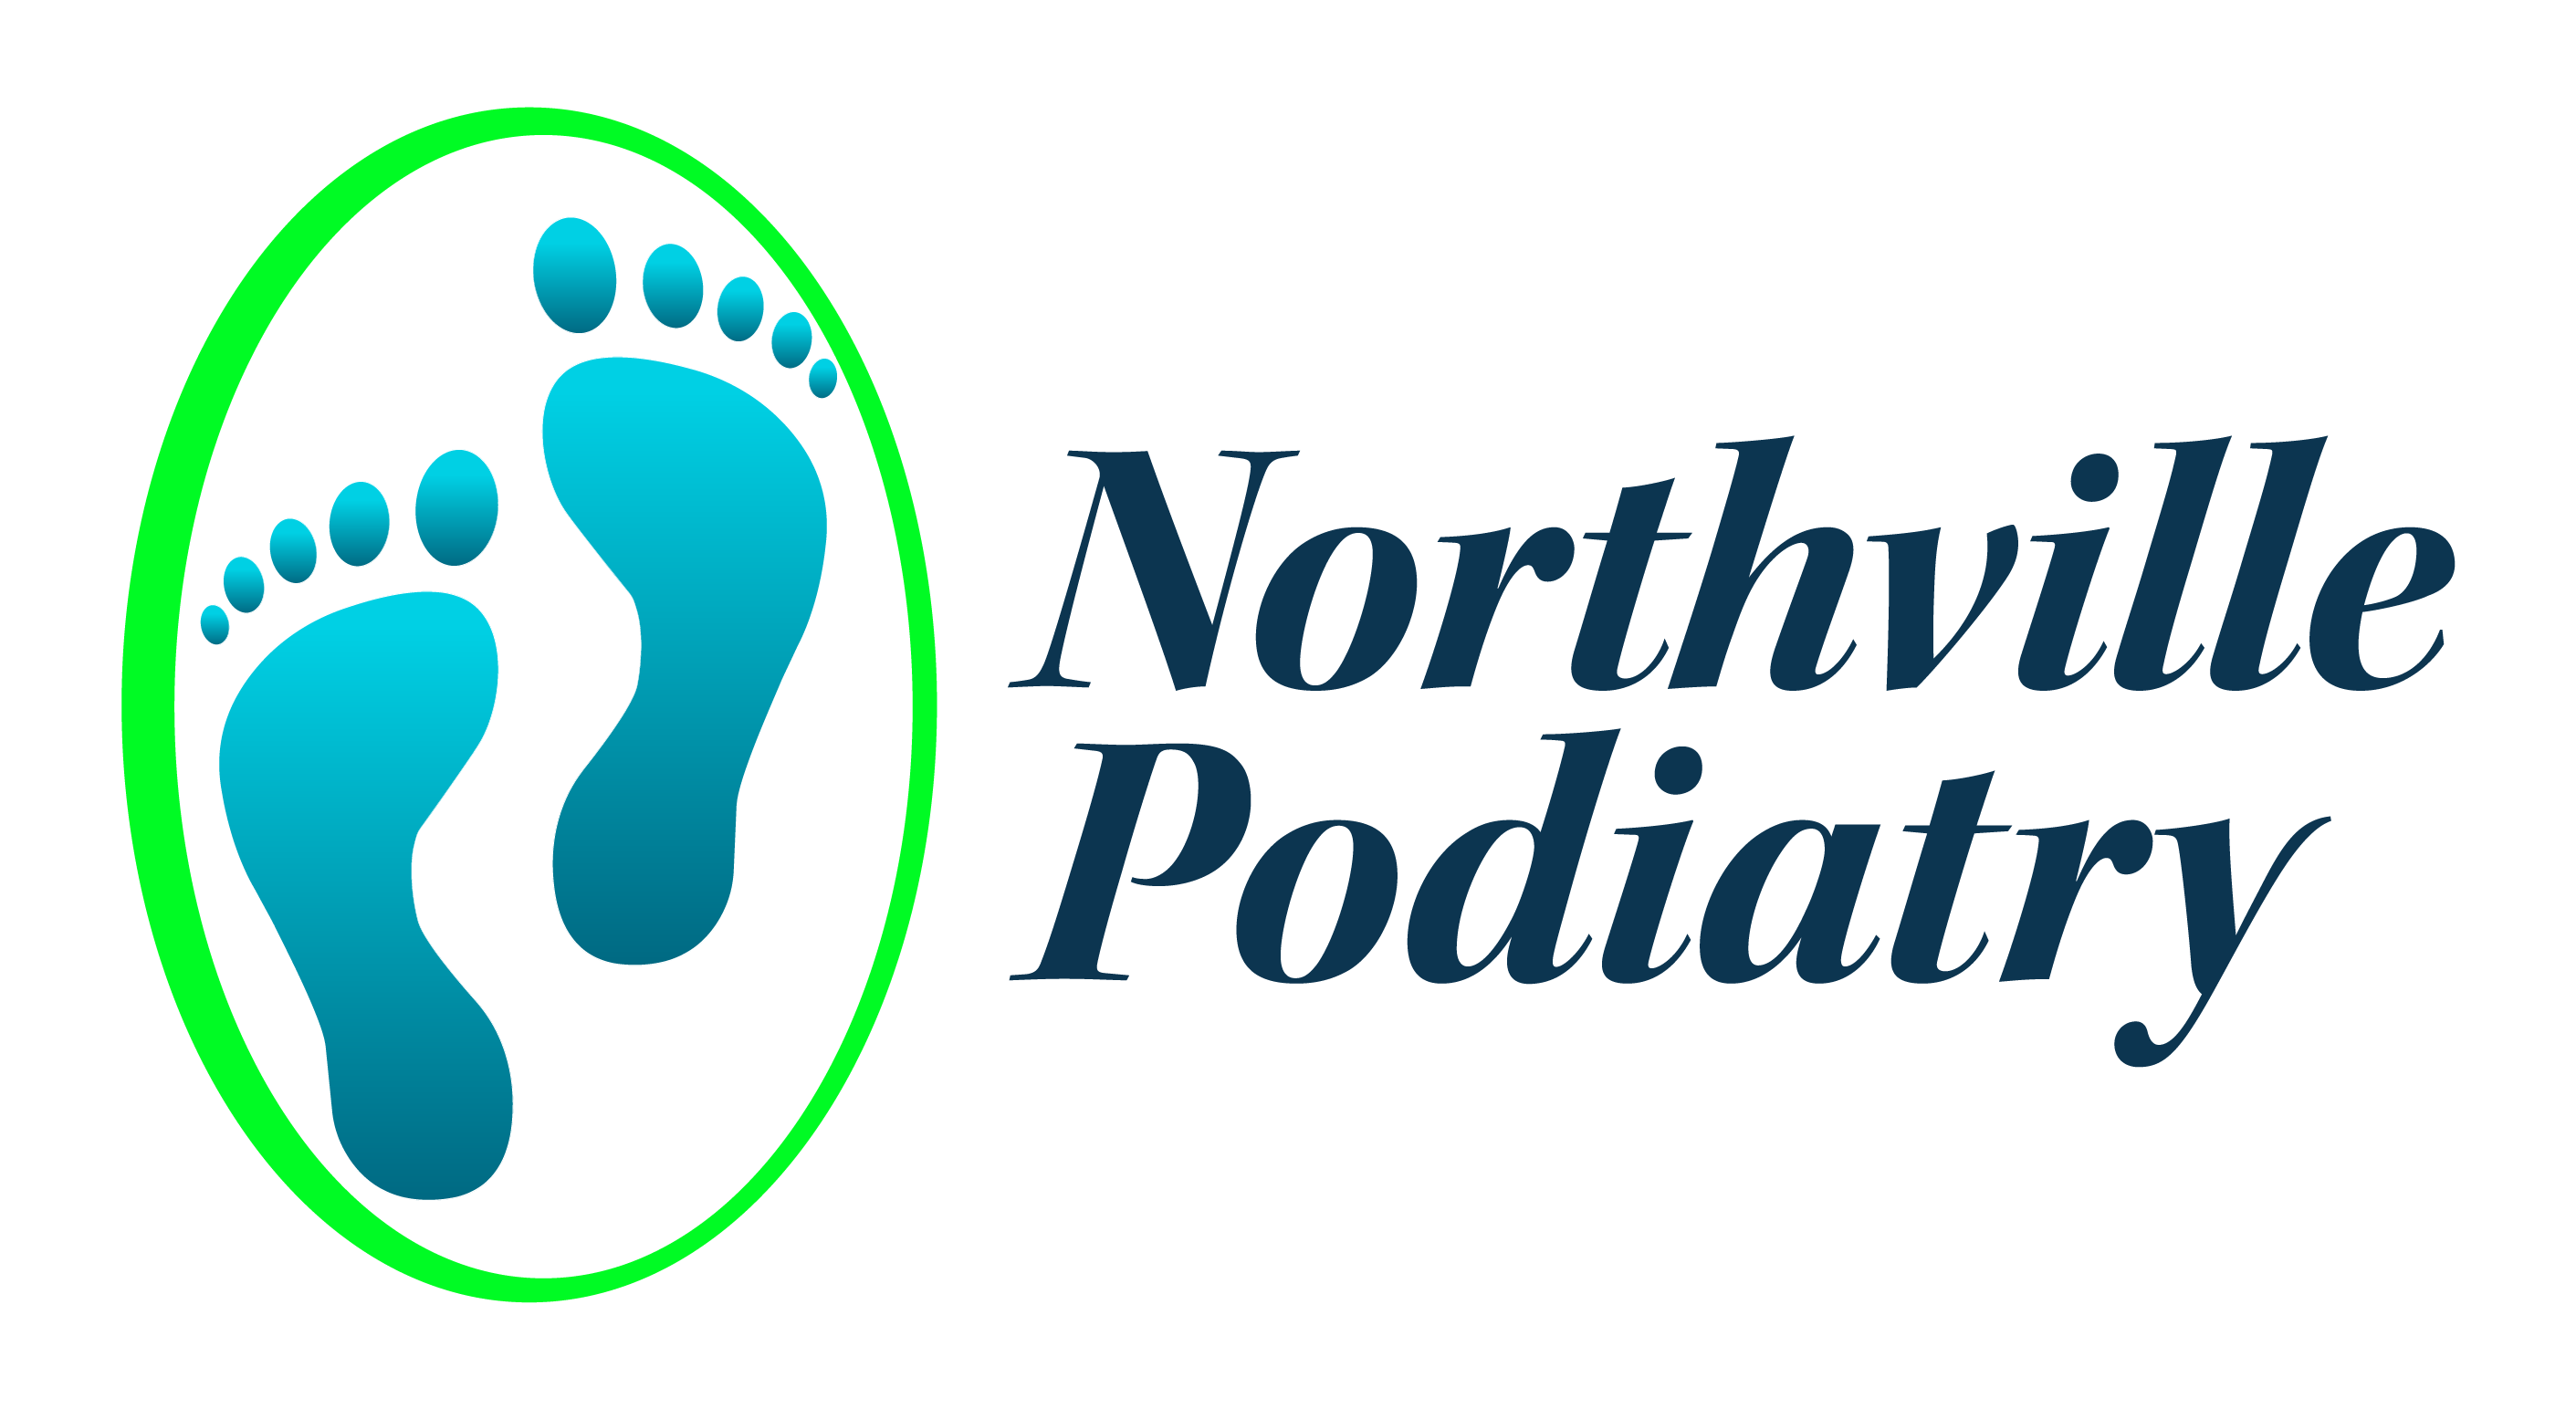 Northville Podiatry